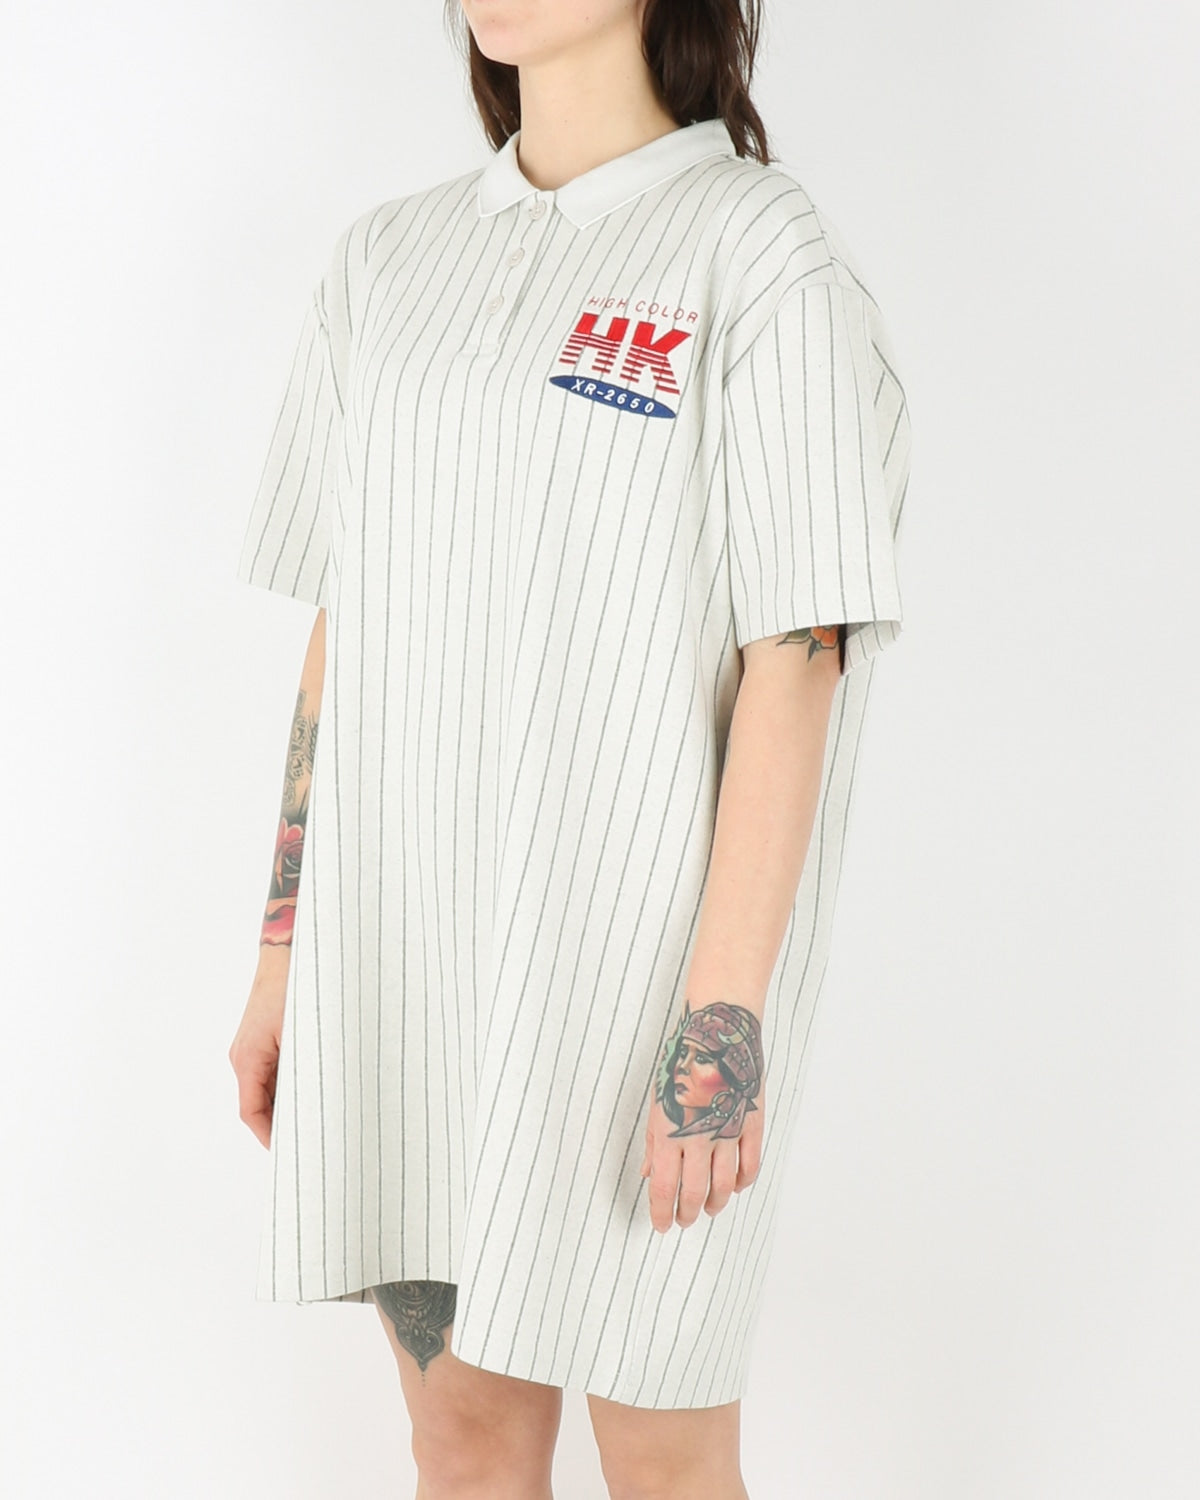 han kjobenhavn_polo dress_pinstripe white_2_3